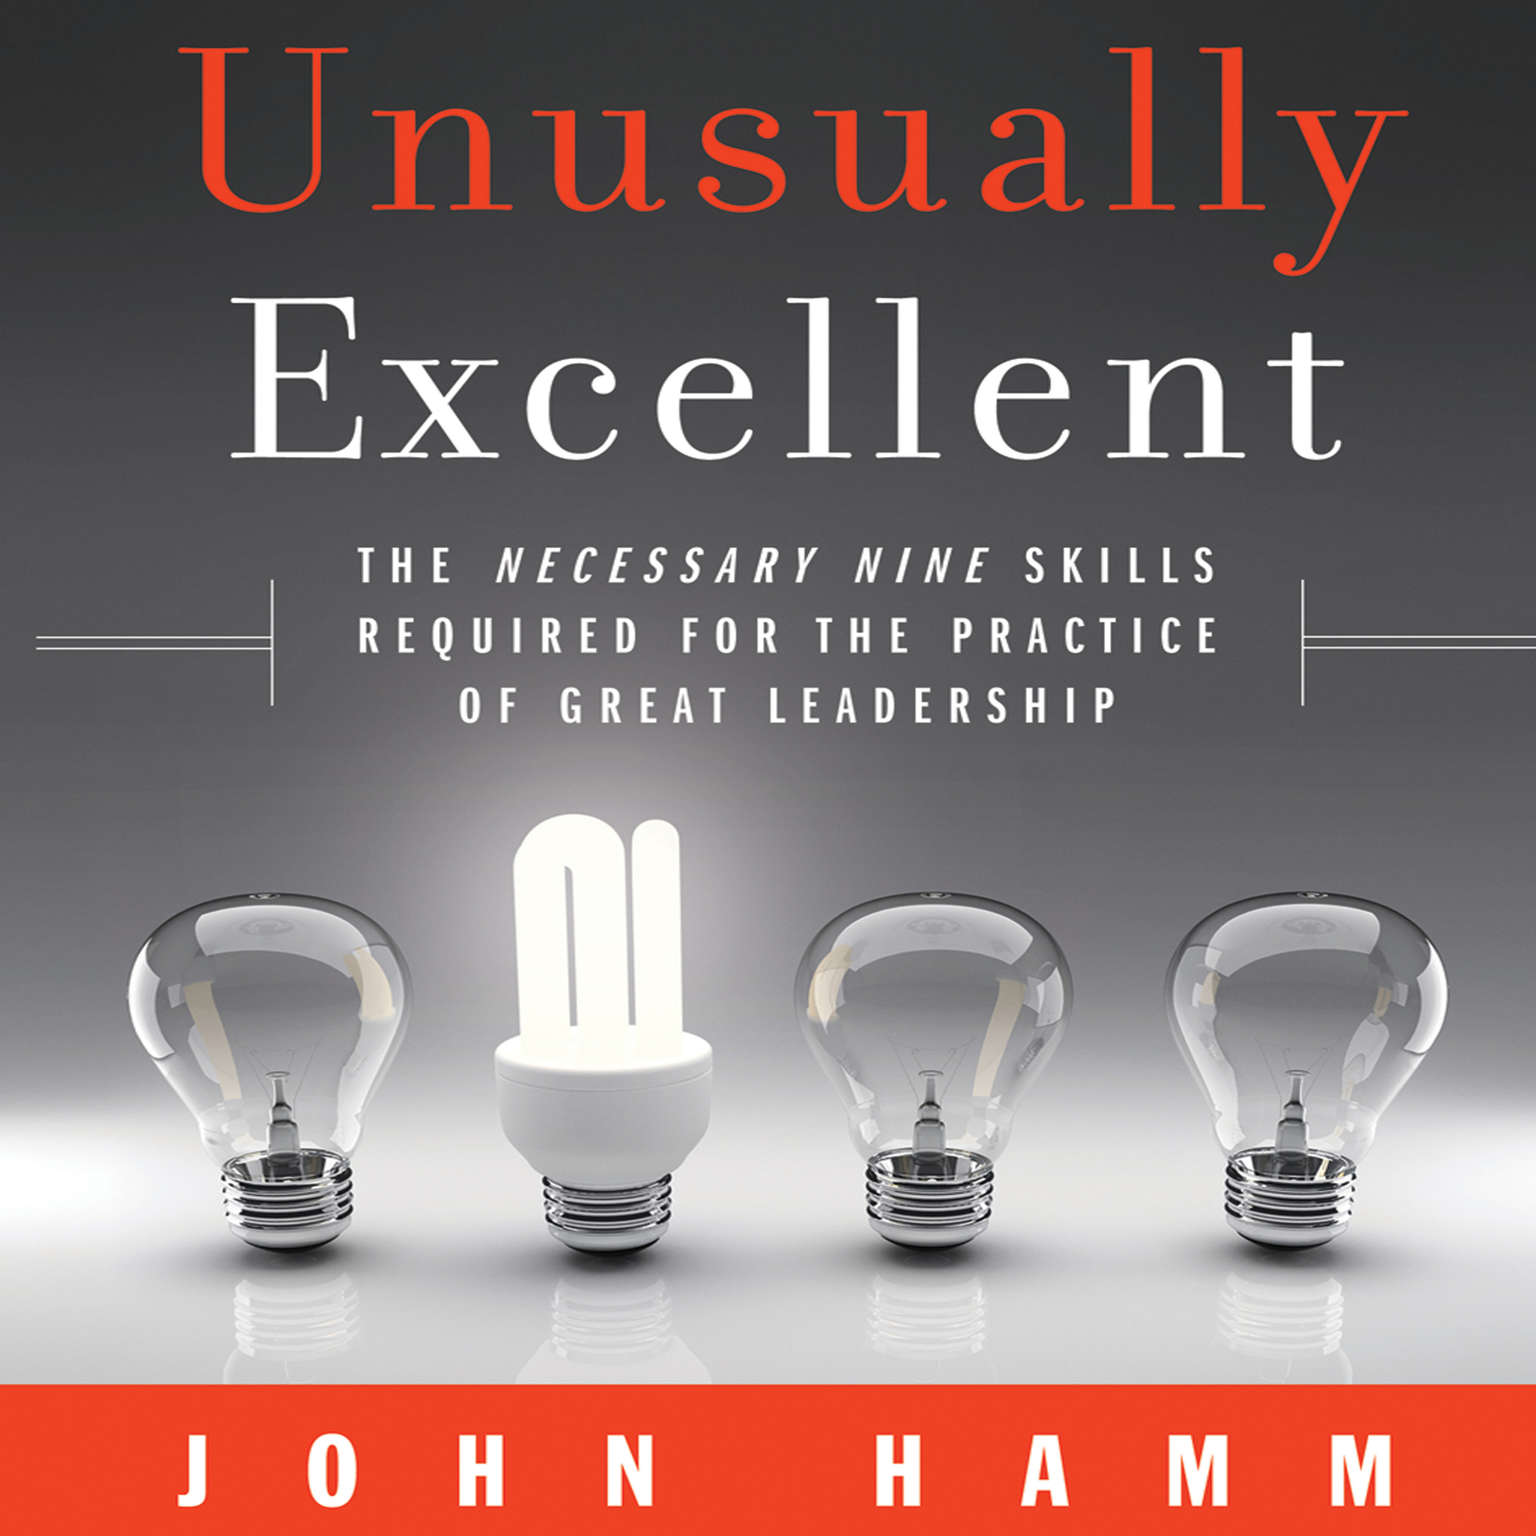 Unusually Excellent: The Necessary Nine Skills Required for the Practice of Great Leadership Audiobook, by John Hamm